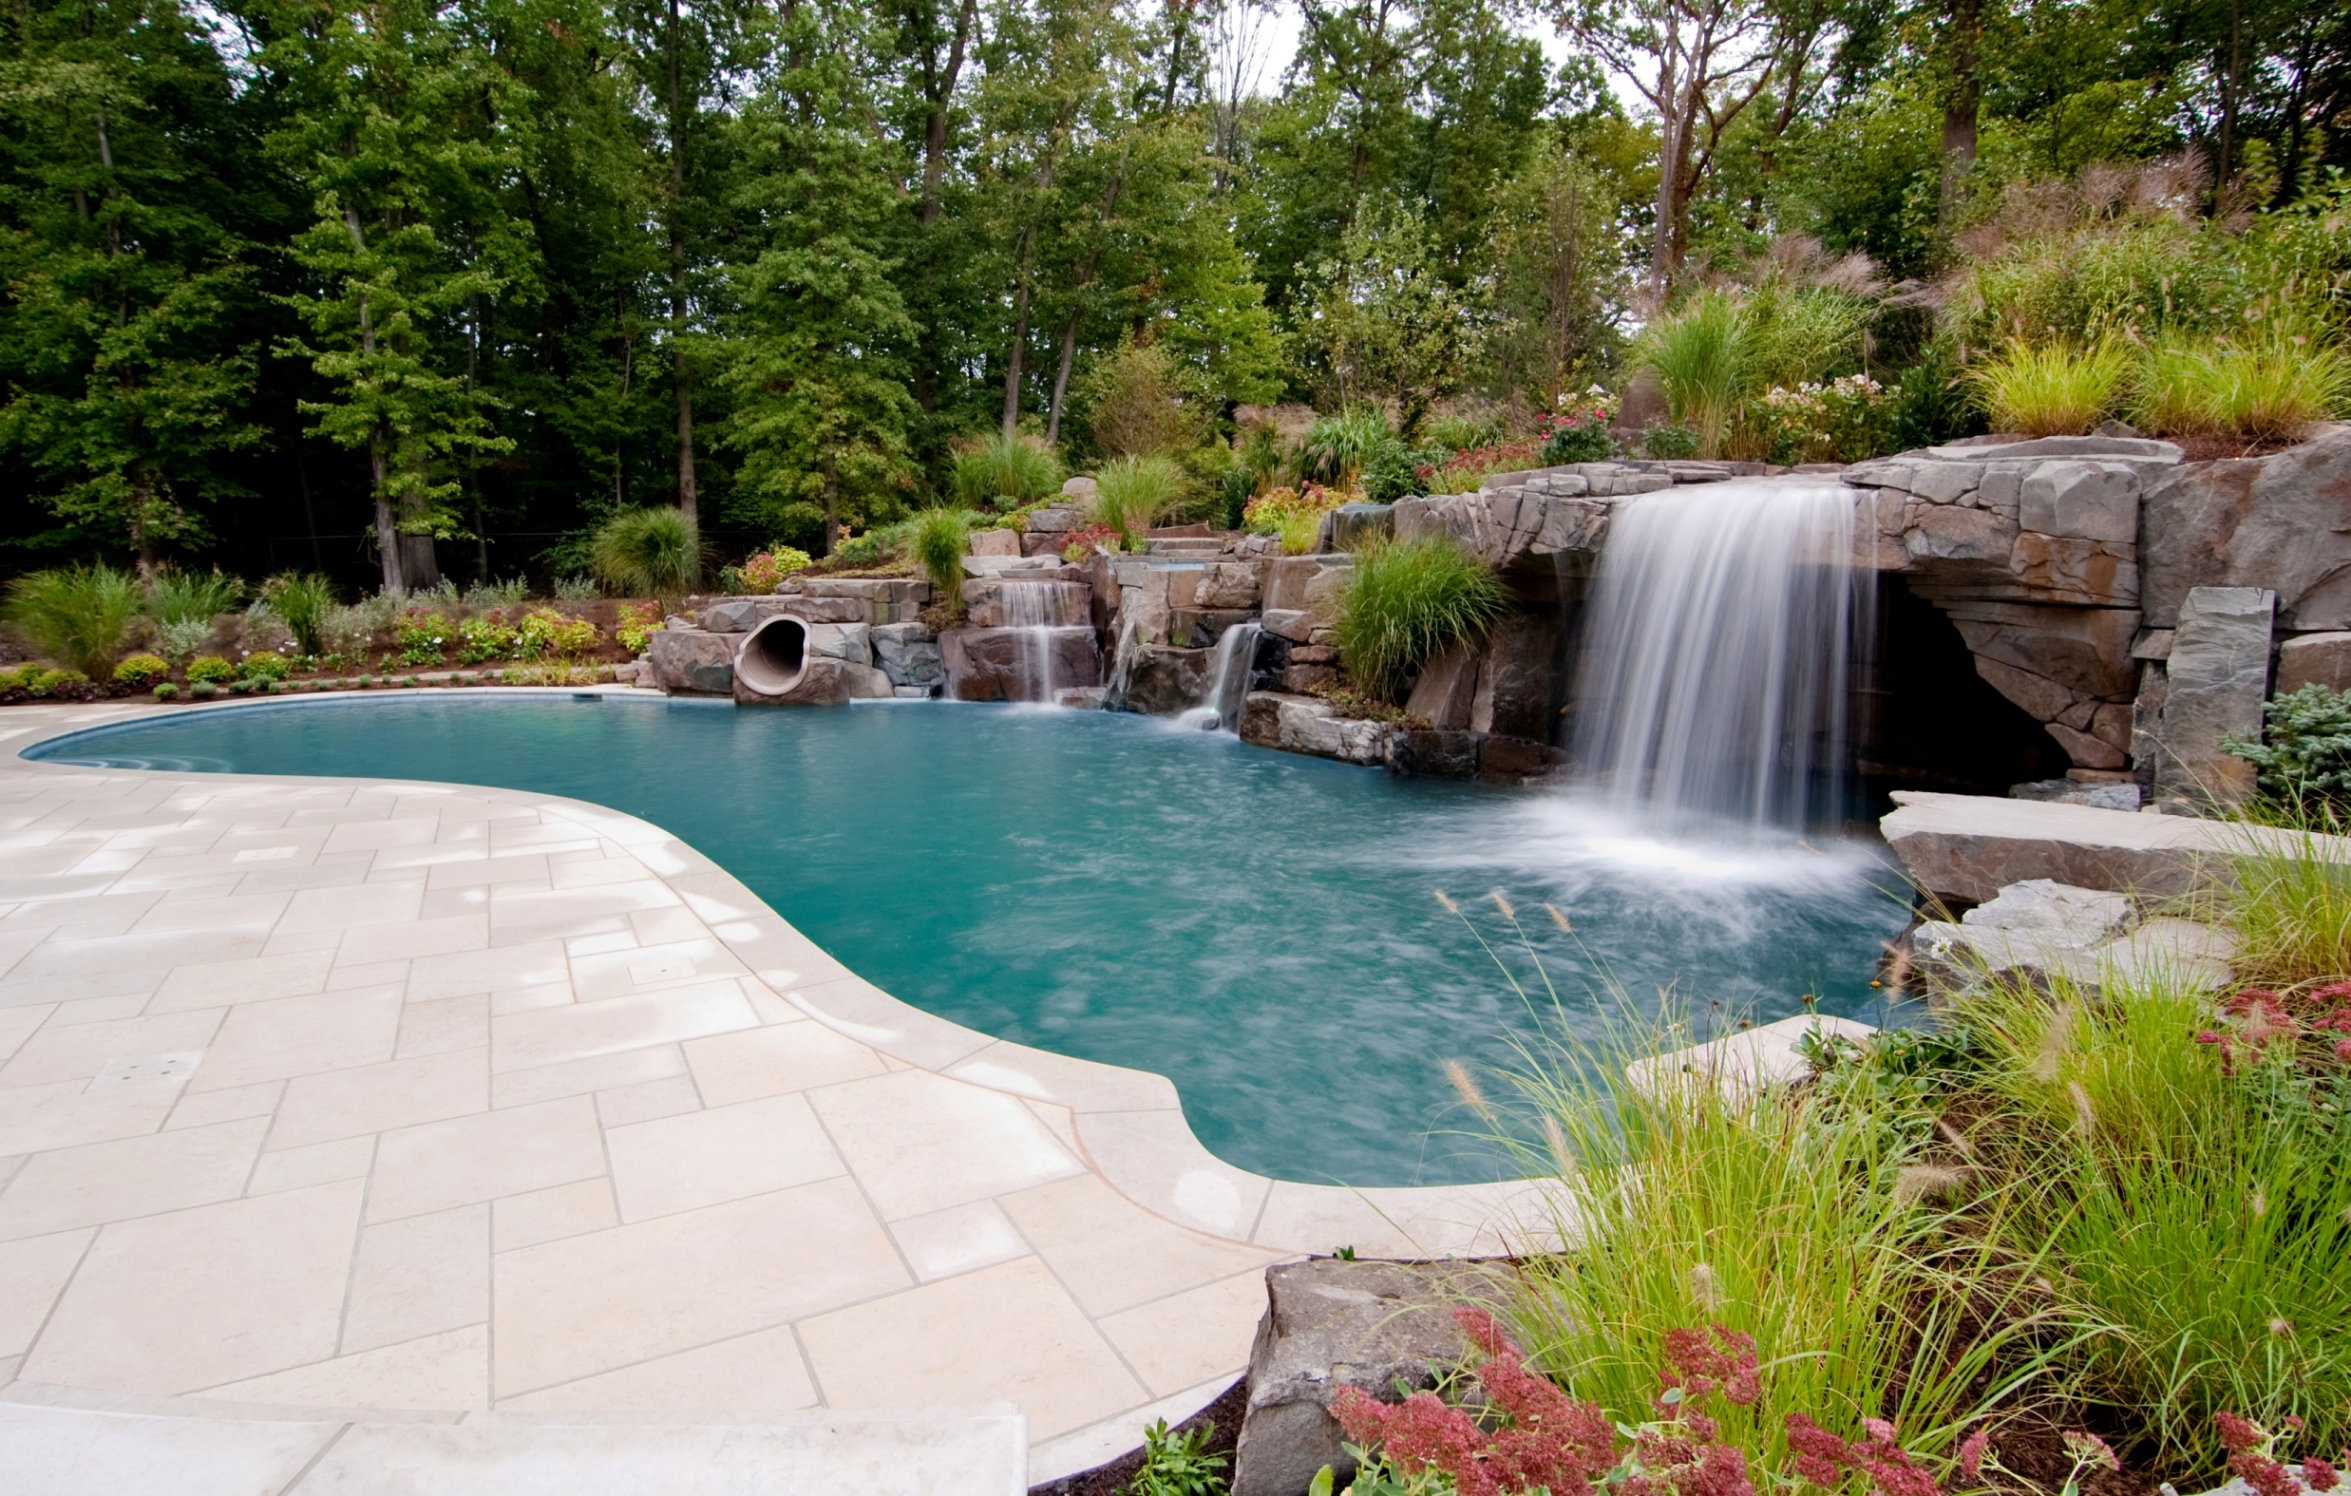 New jersey inground pool company earns international award - Natural swimming pool design ...